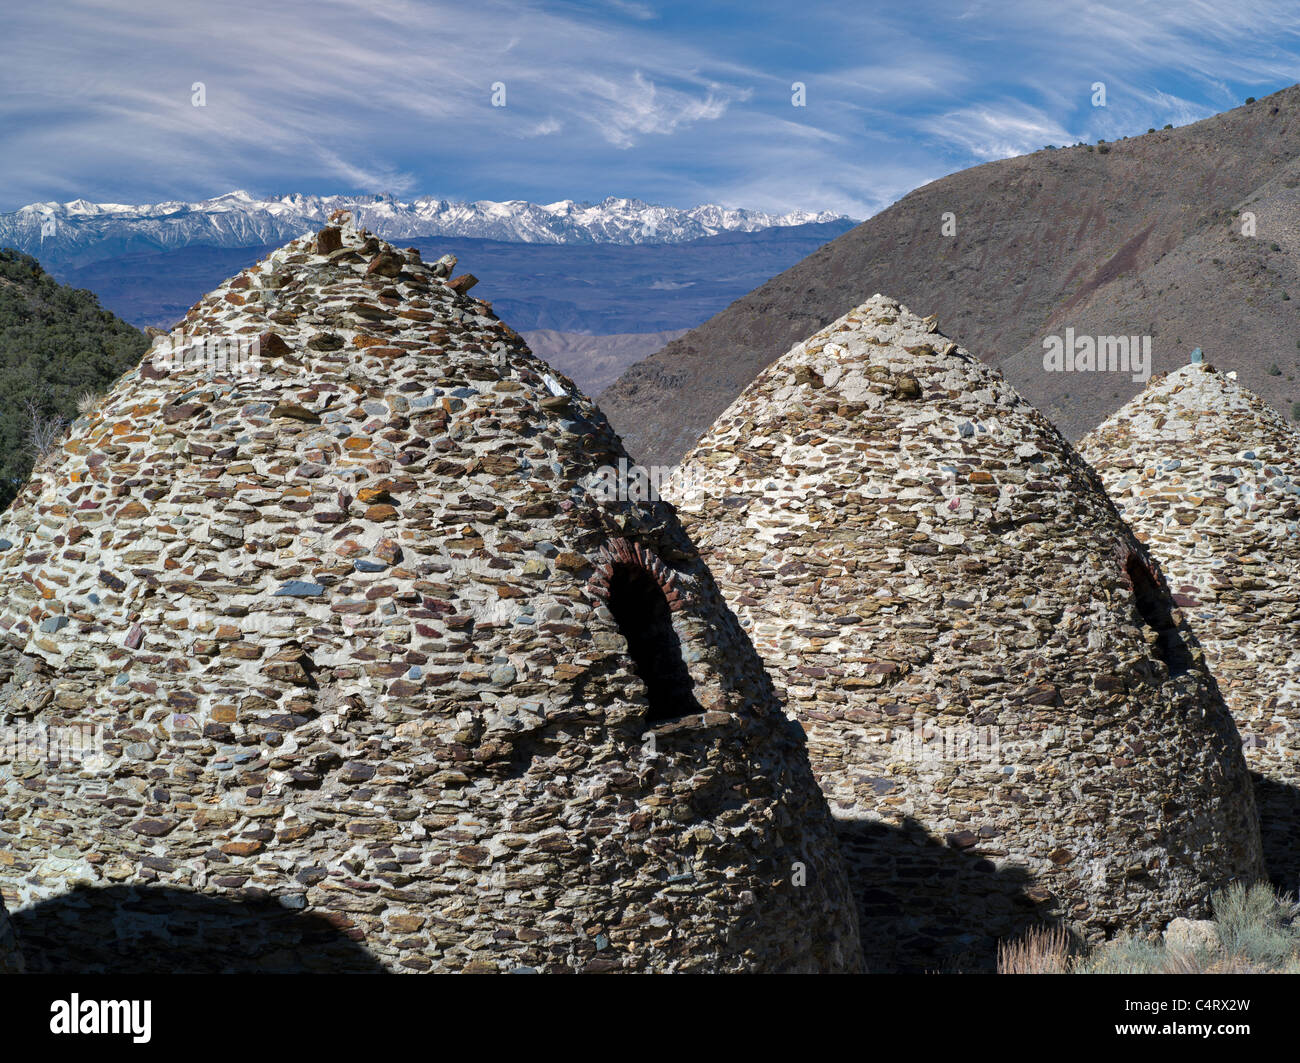 Charcoal kilns. Death Valley National Park, California - Stock Image